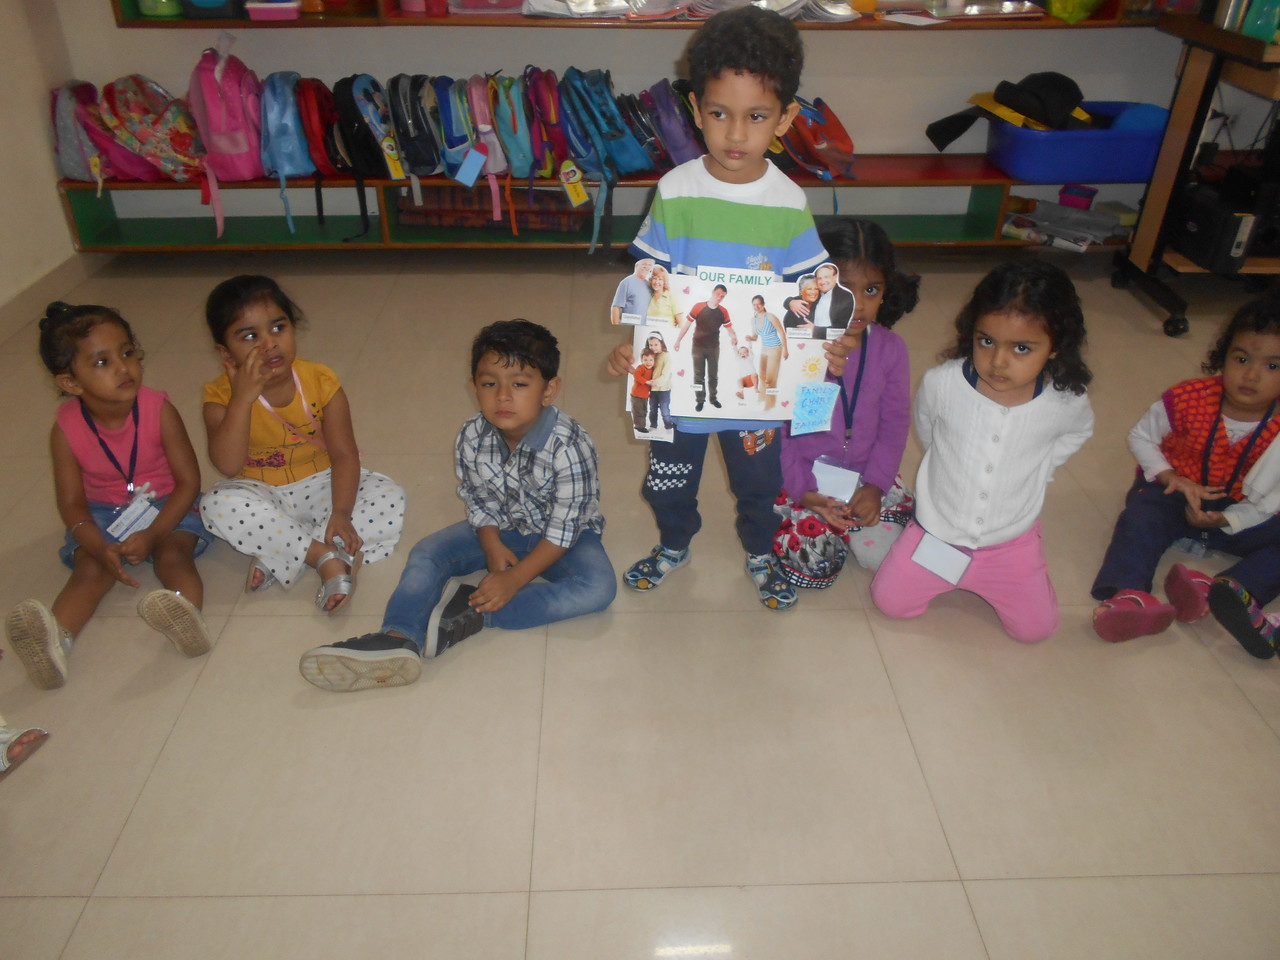 SHOW AND TELL TIME!! (2)